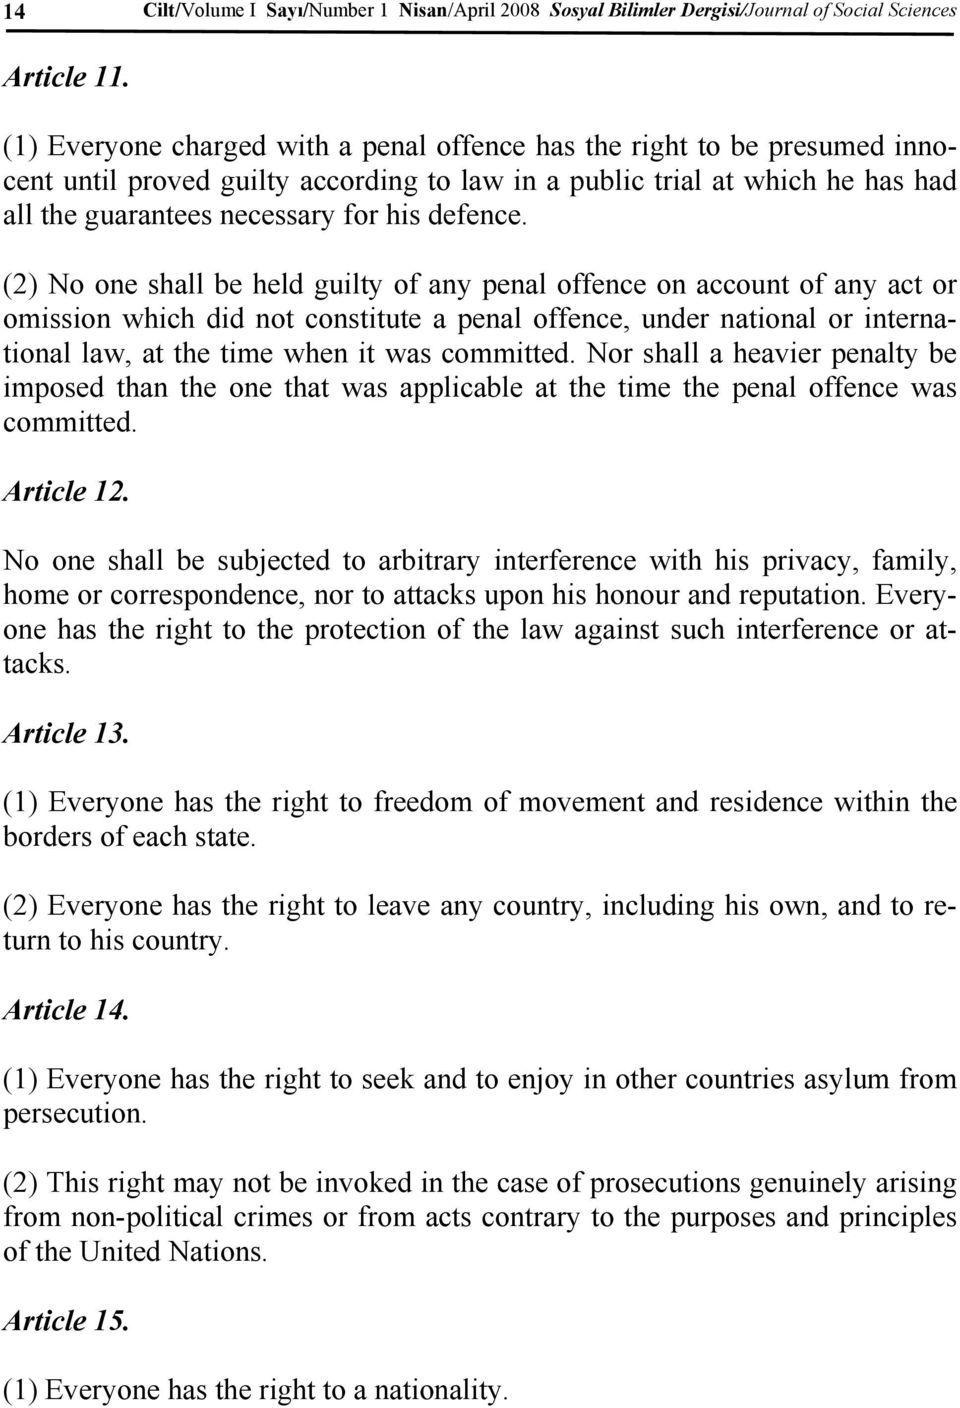 (2) No one shall be held guilty of any penal offence on account of any act or omission which did not constitute a penal offence, under national or international law, at the time when it was committed.